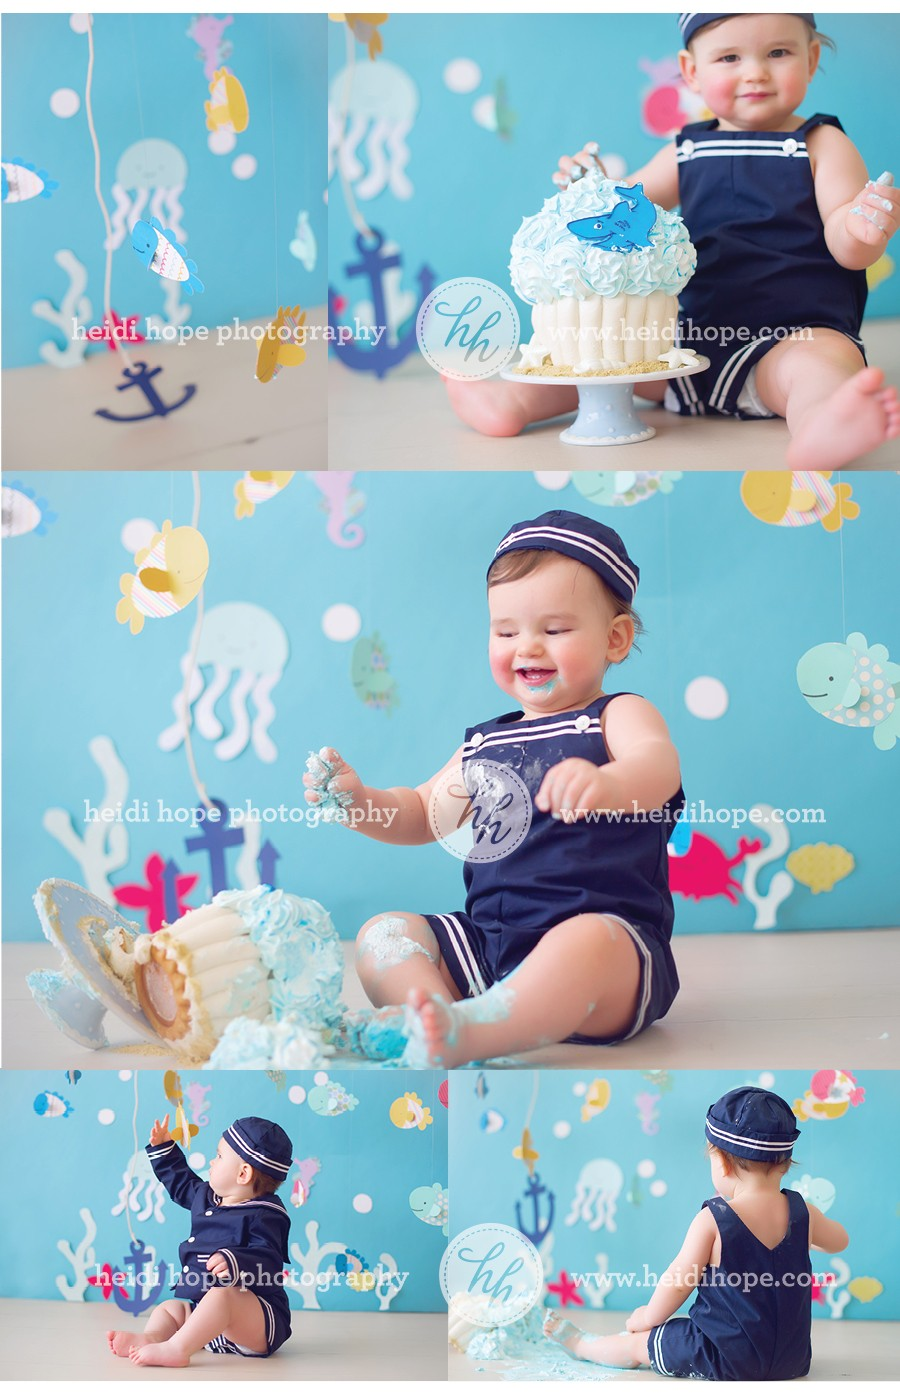 Under The Sea Nautical Birthday Cake Smash by Heidi Hope Photography #cake smash #birthday #sea creatures #ocean party #under the sea party